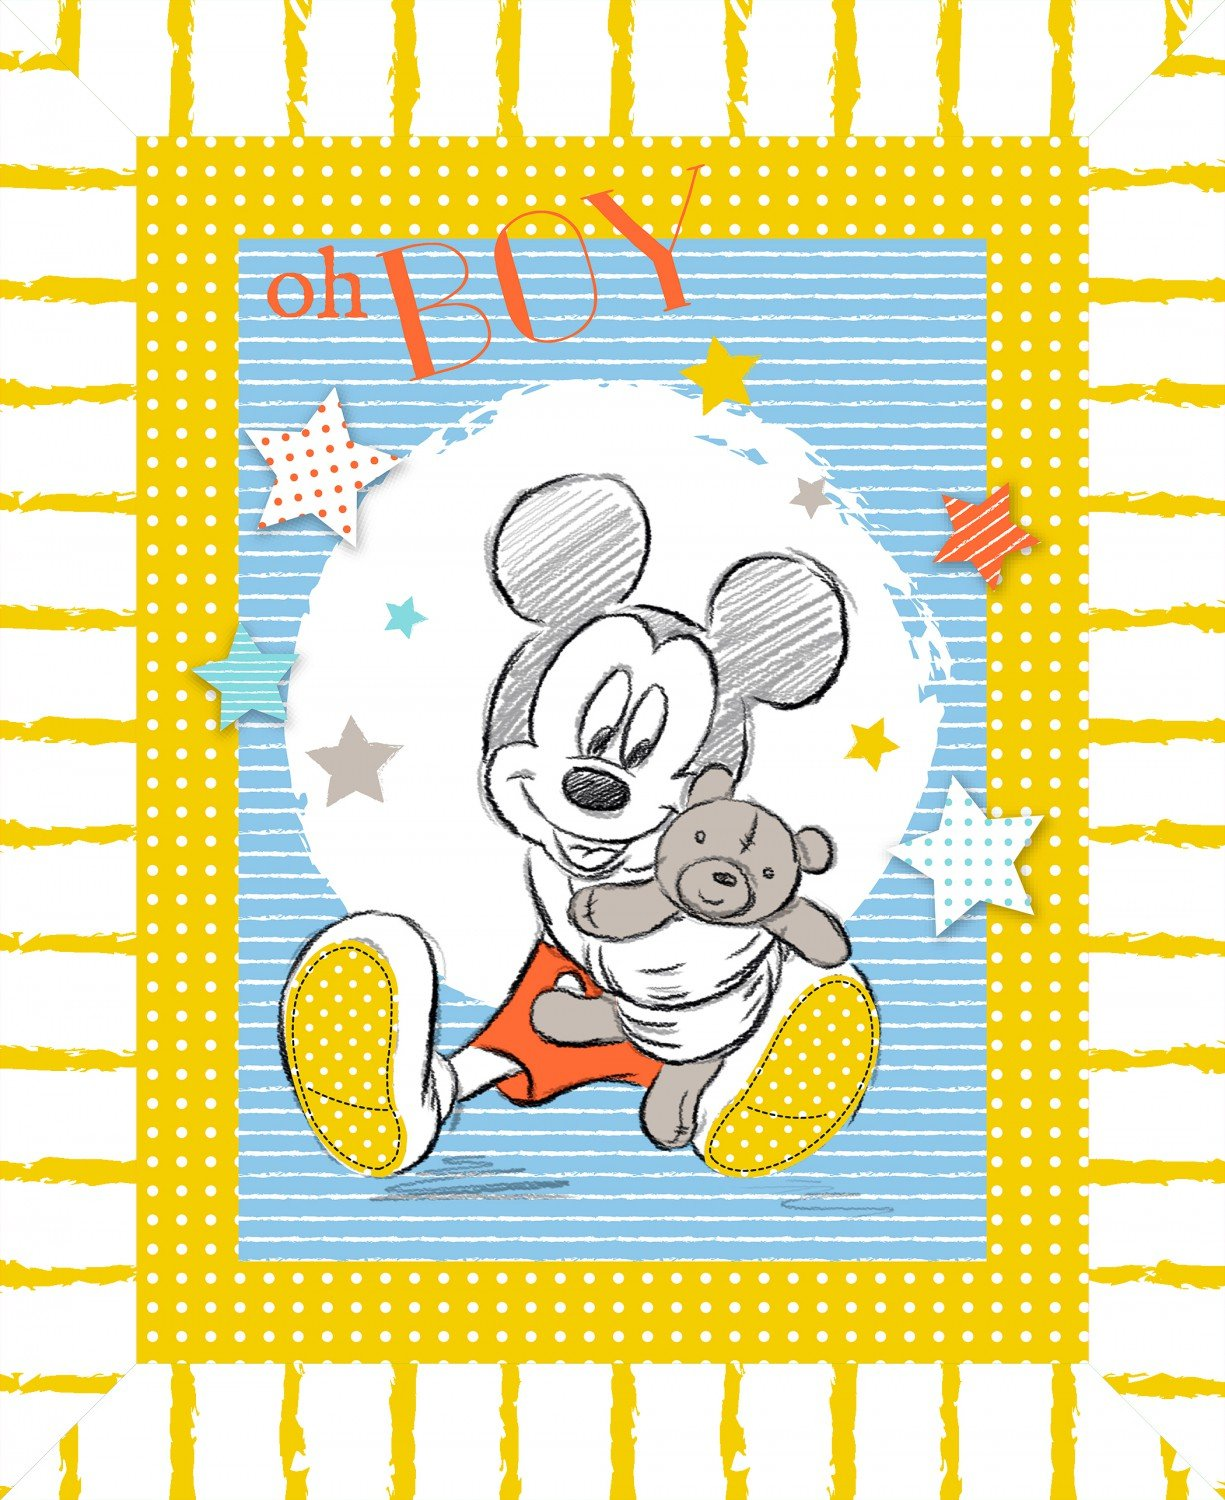 Mickey Mouse Oh Boy Panel 57855